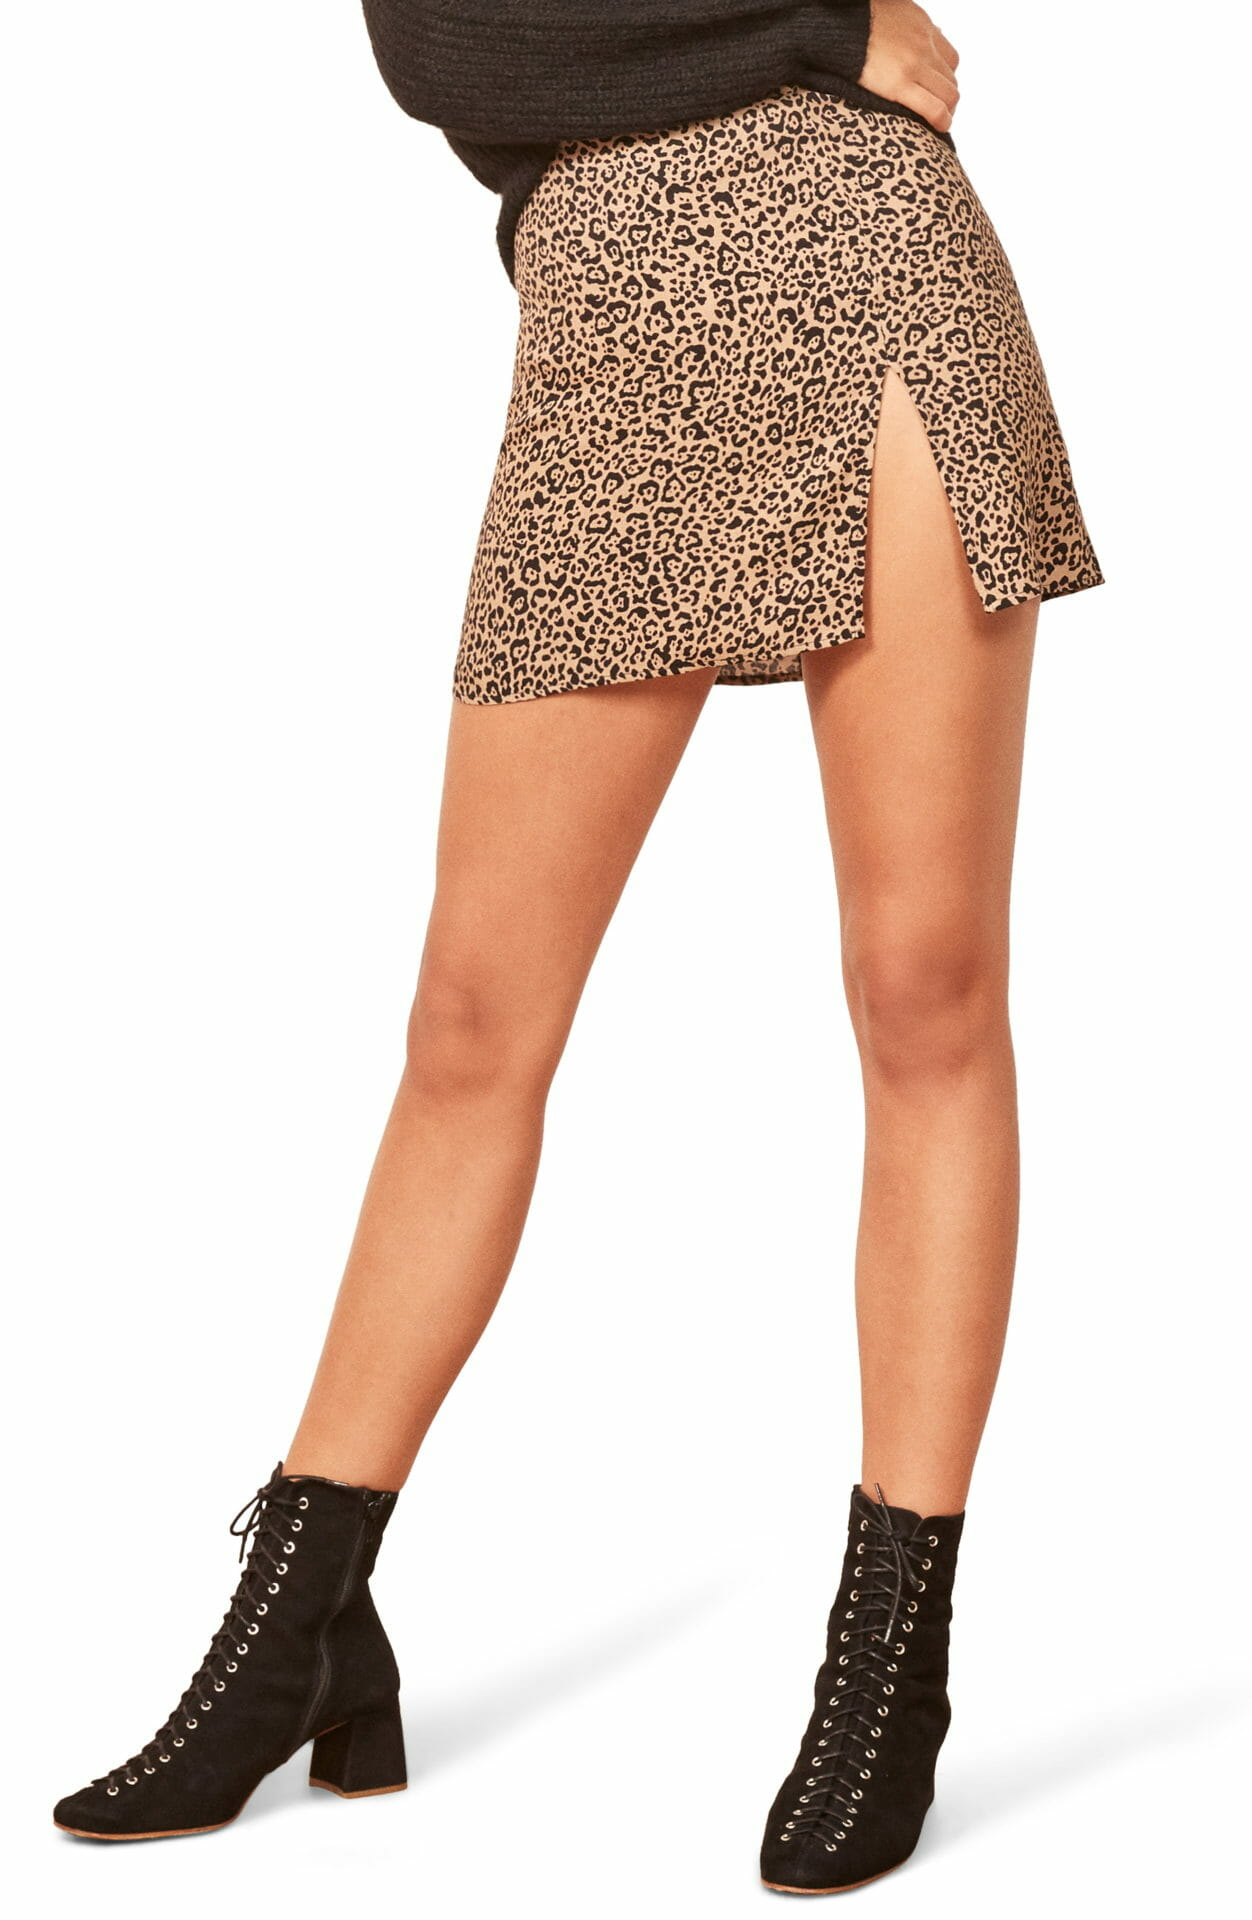 REFORMATION Margot Miniskirt, Main, color, BENGAL